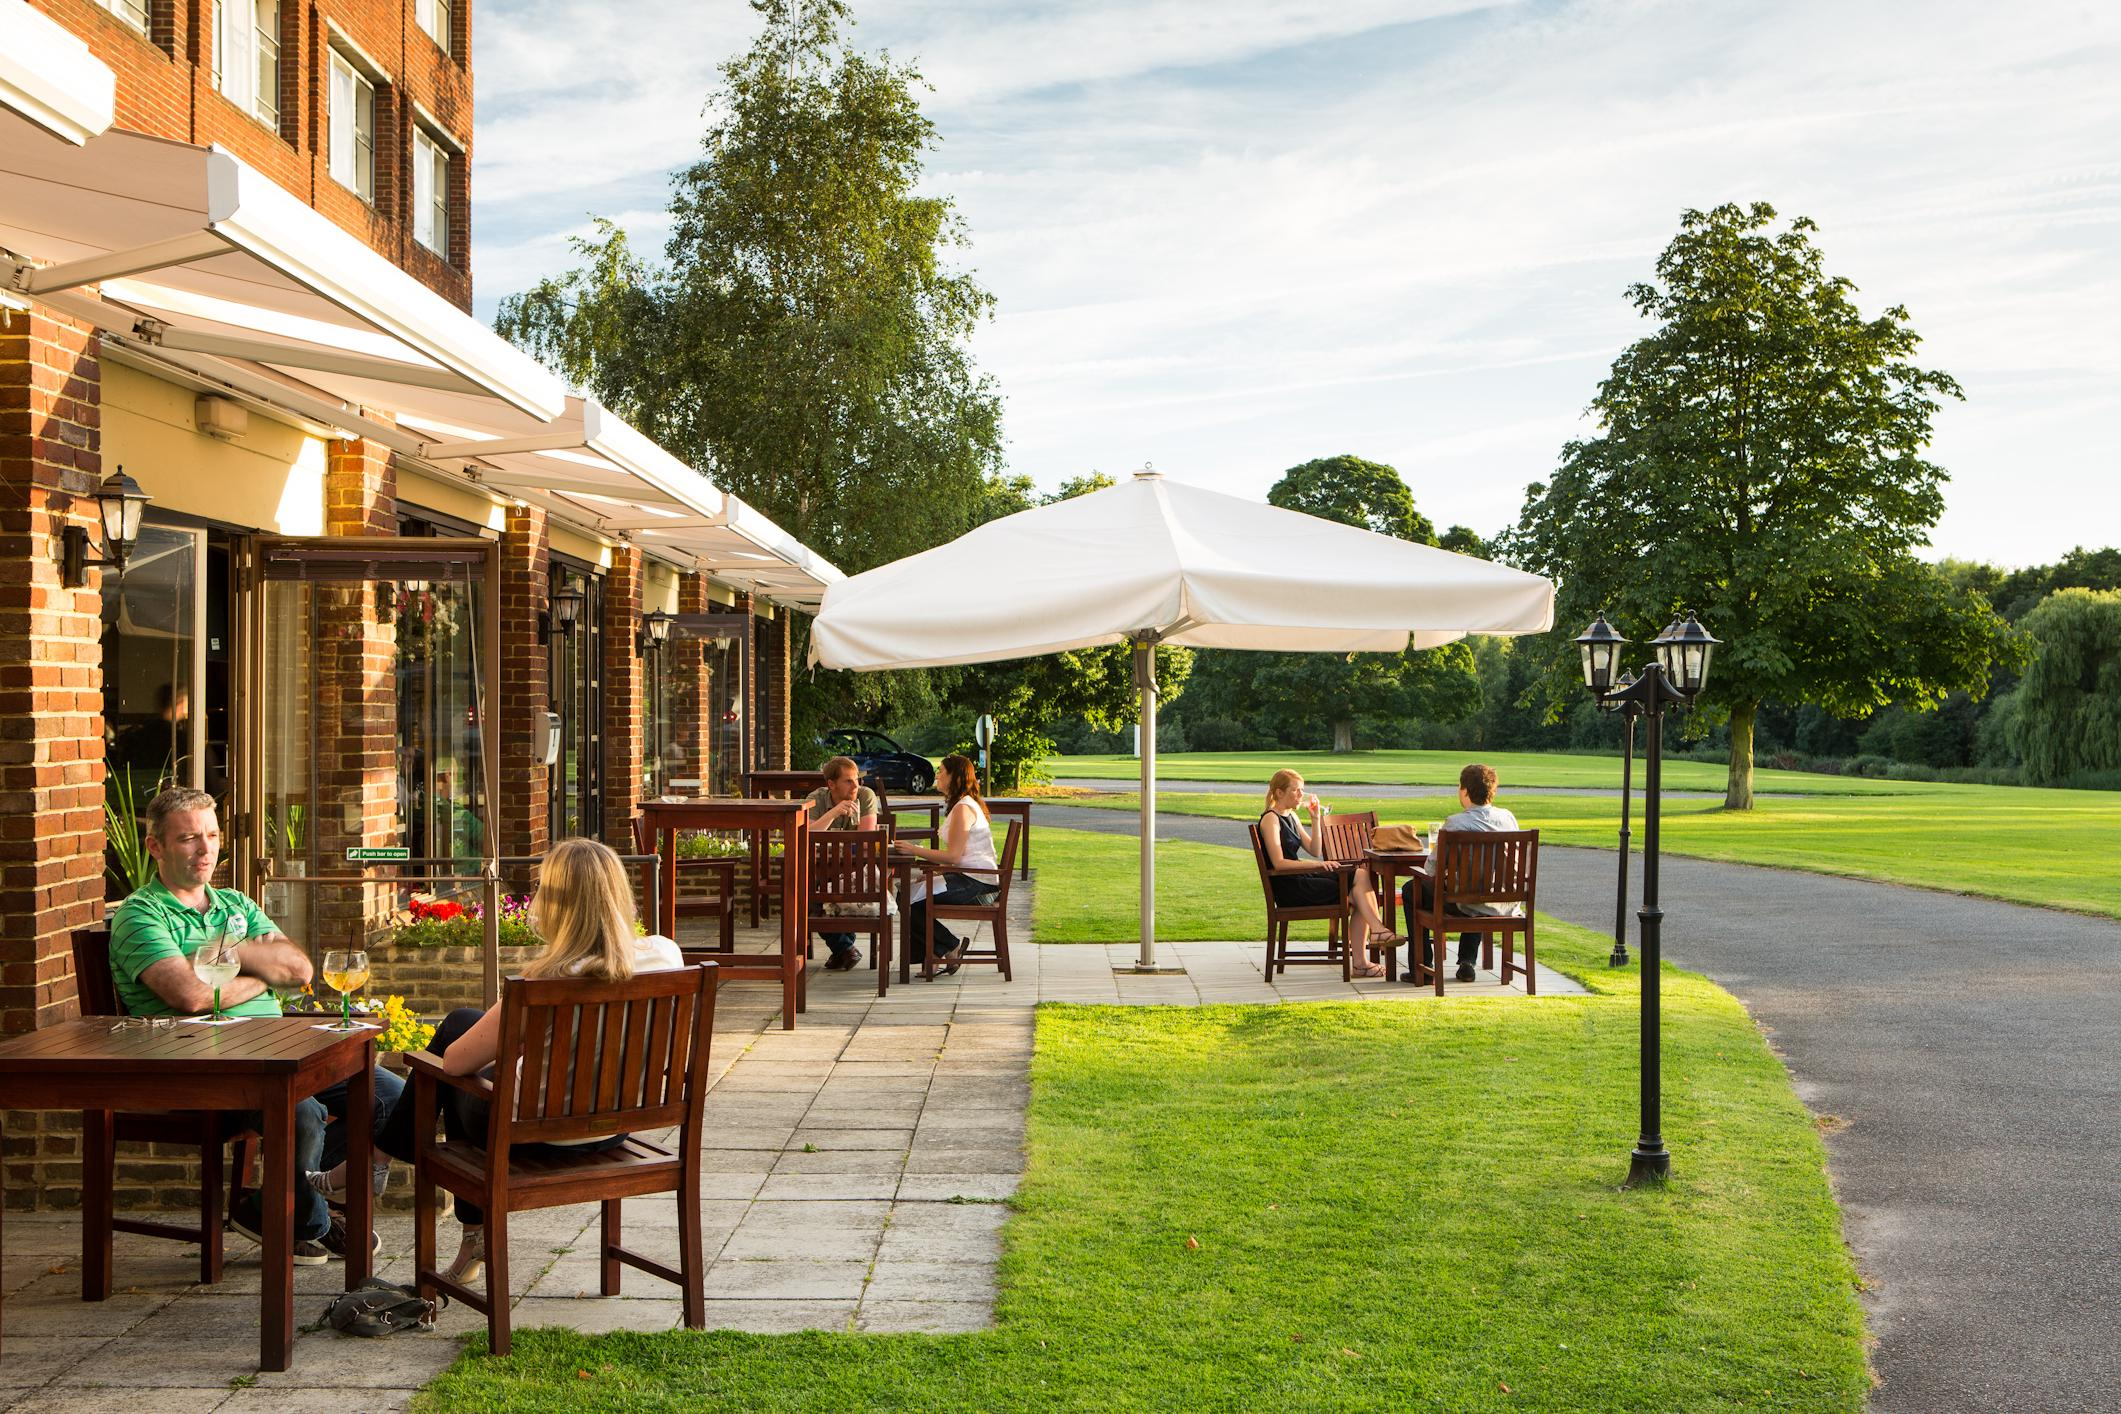 Image of Brasserie at Mercure Maidstone